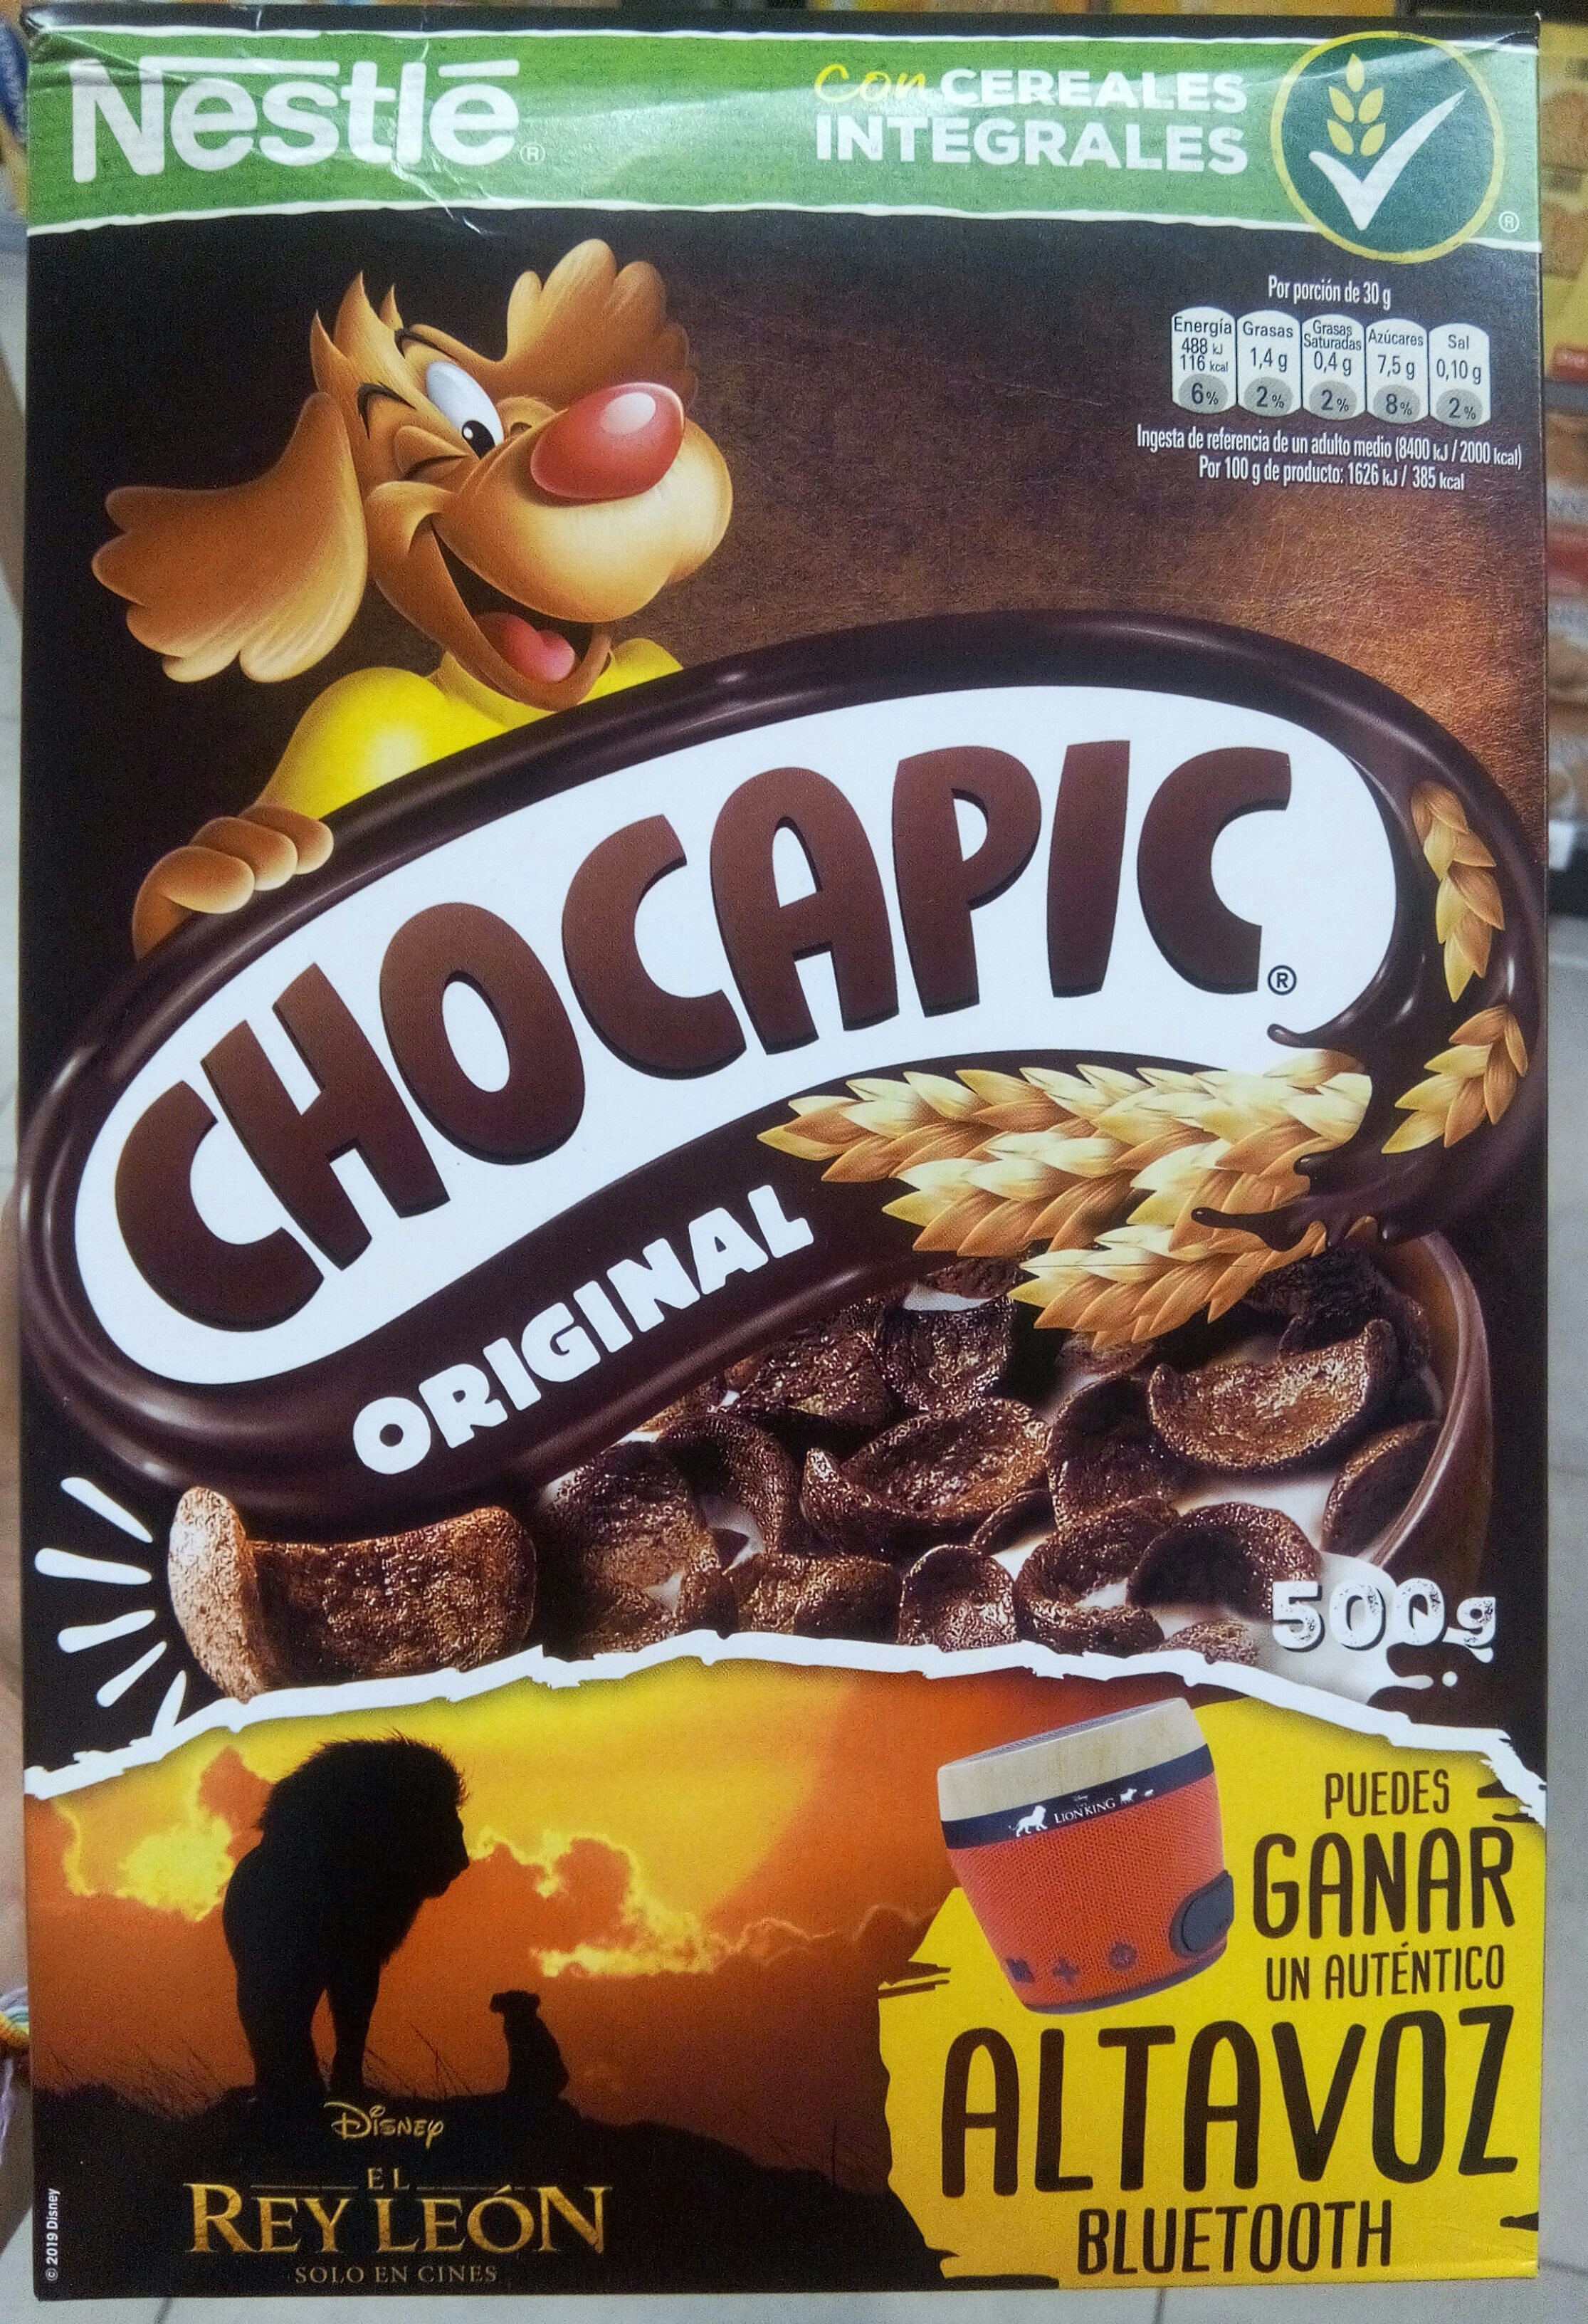 Chocapic Original - Product